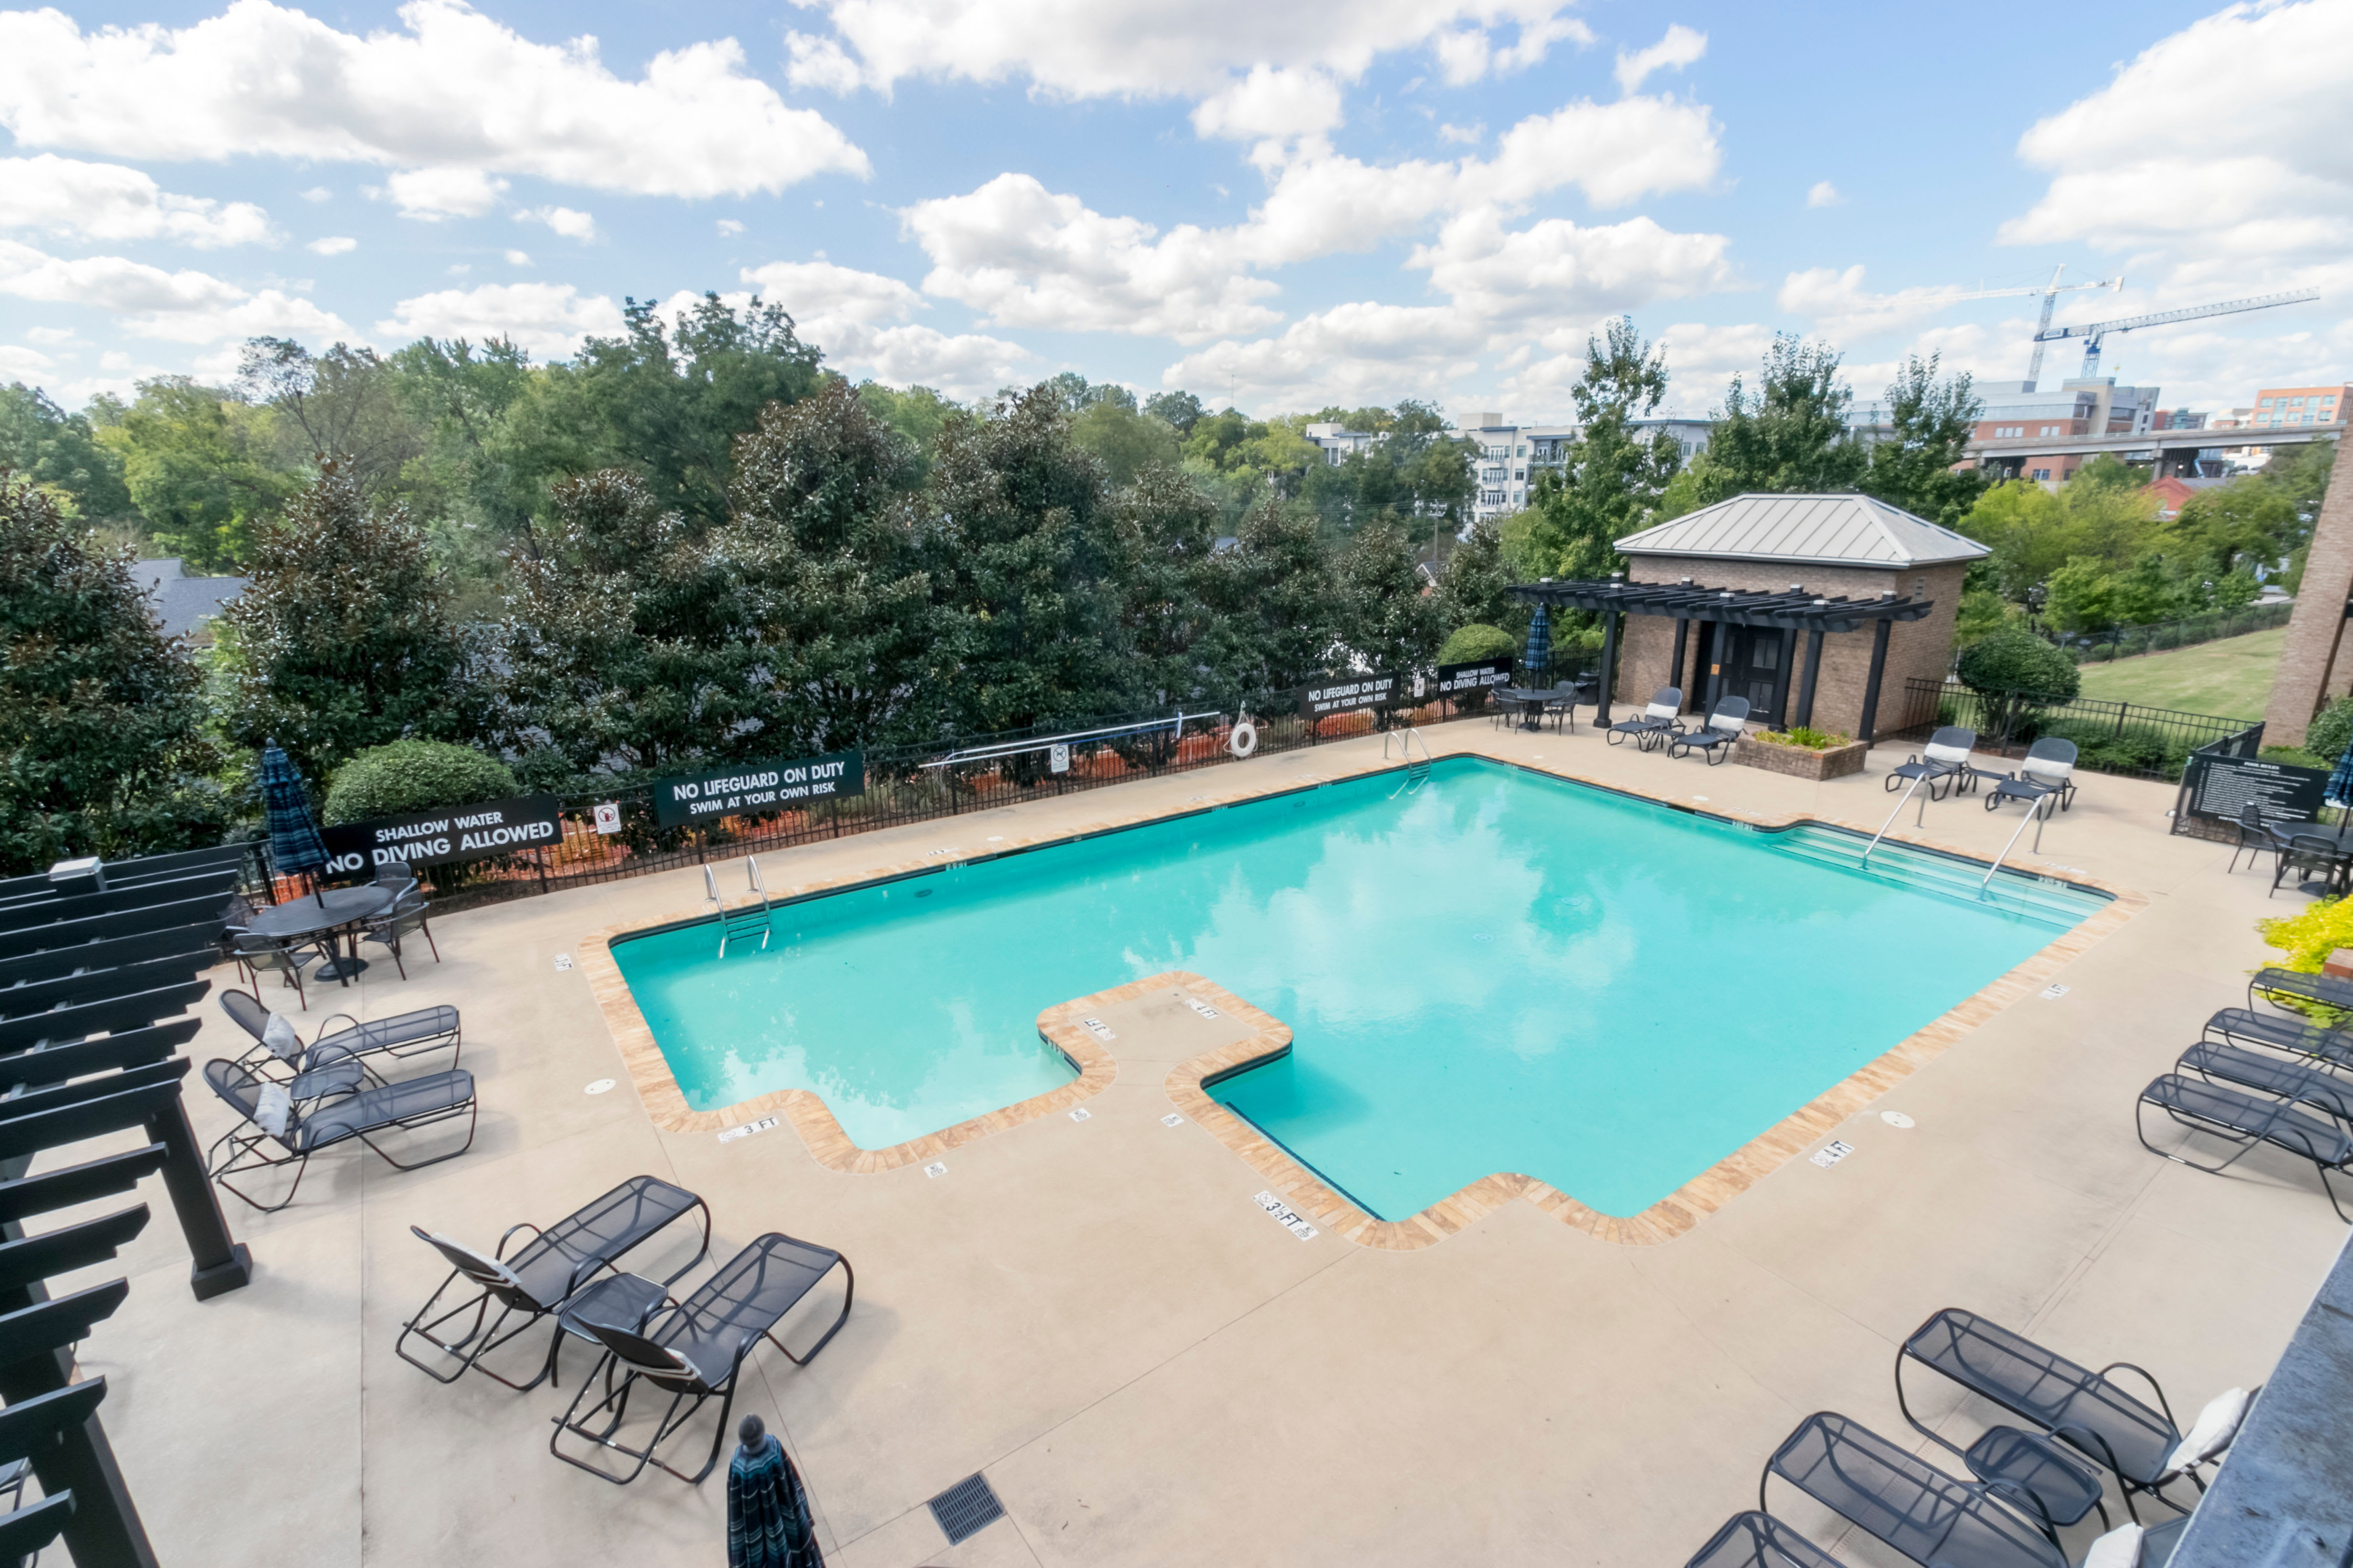 Sparkling pool at McBee Station in Greenville, South Carolina